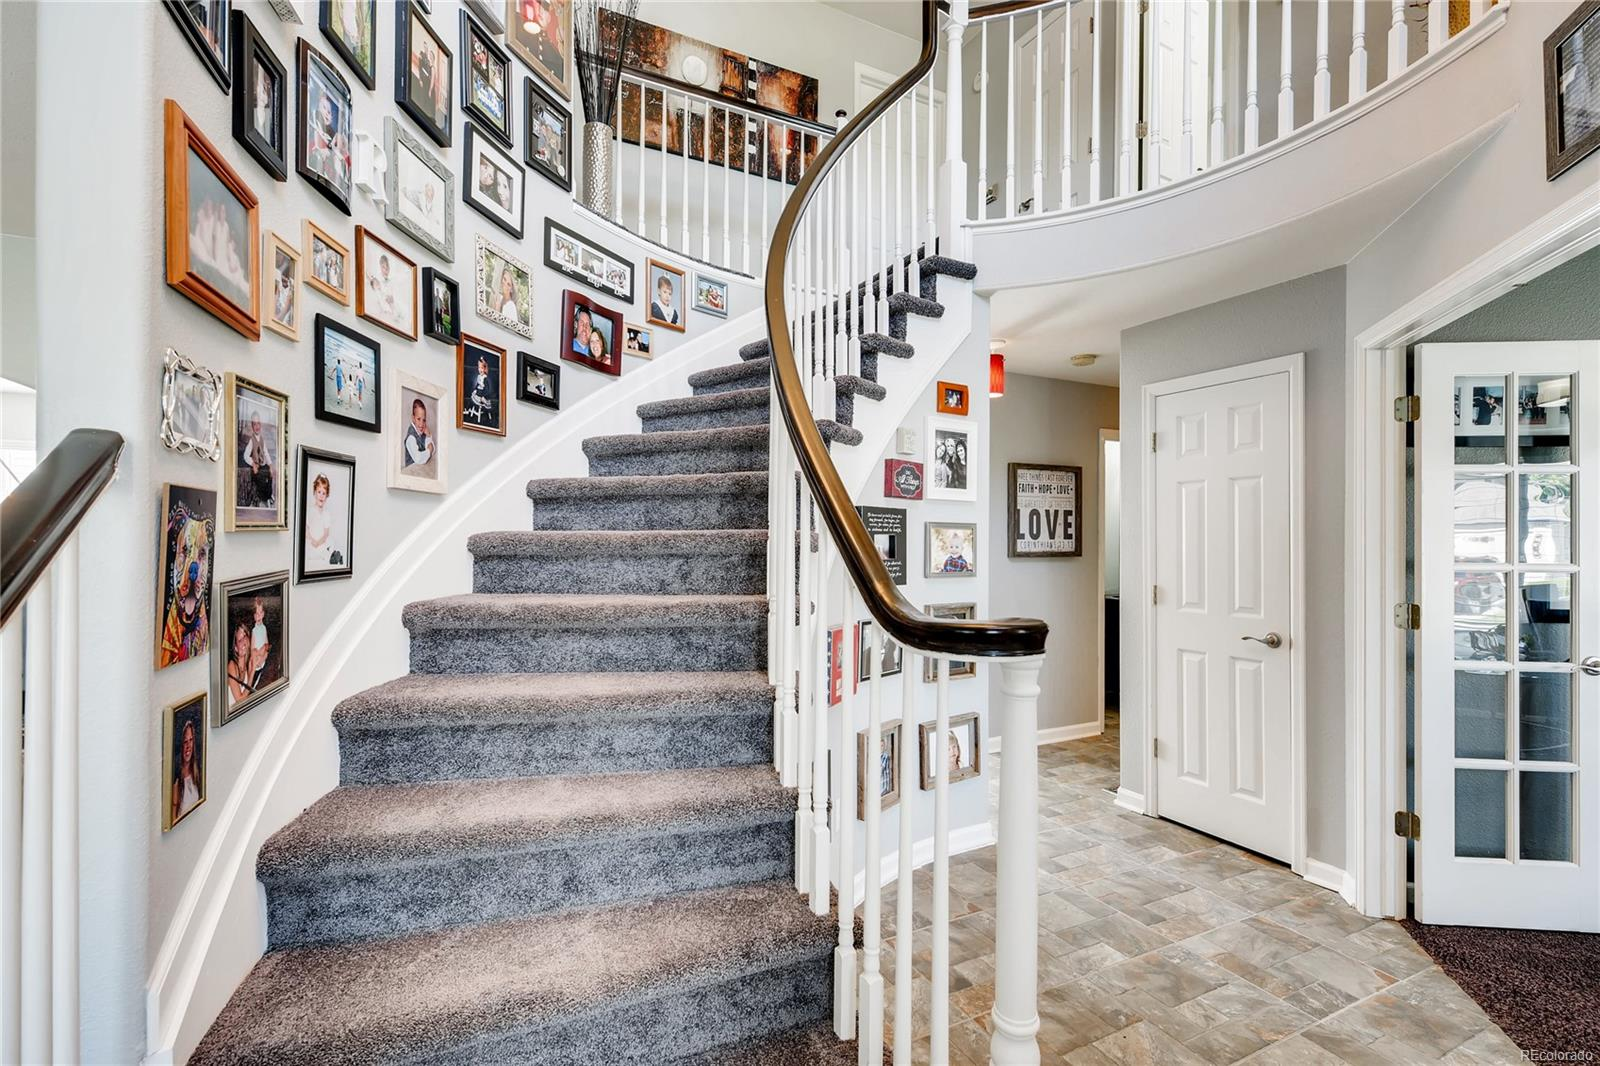 The staircase off the entry is a beautiful focal point of the home.